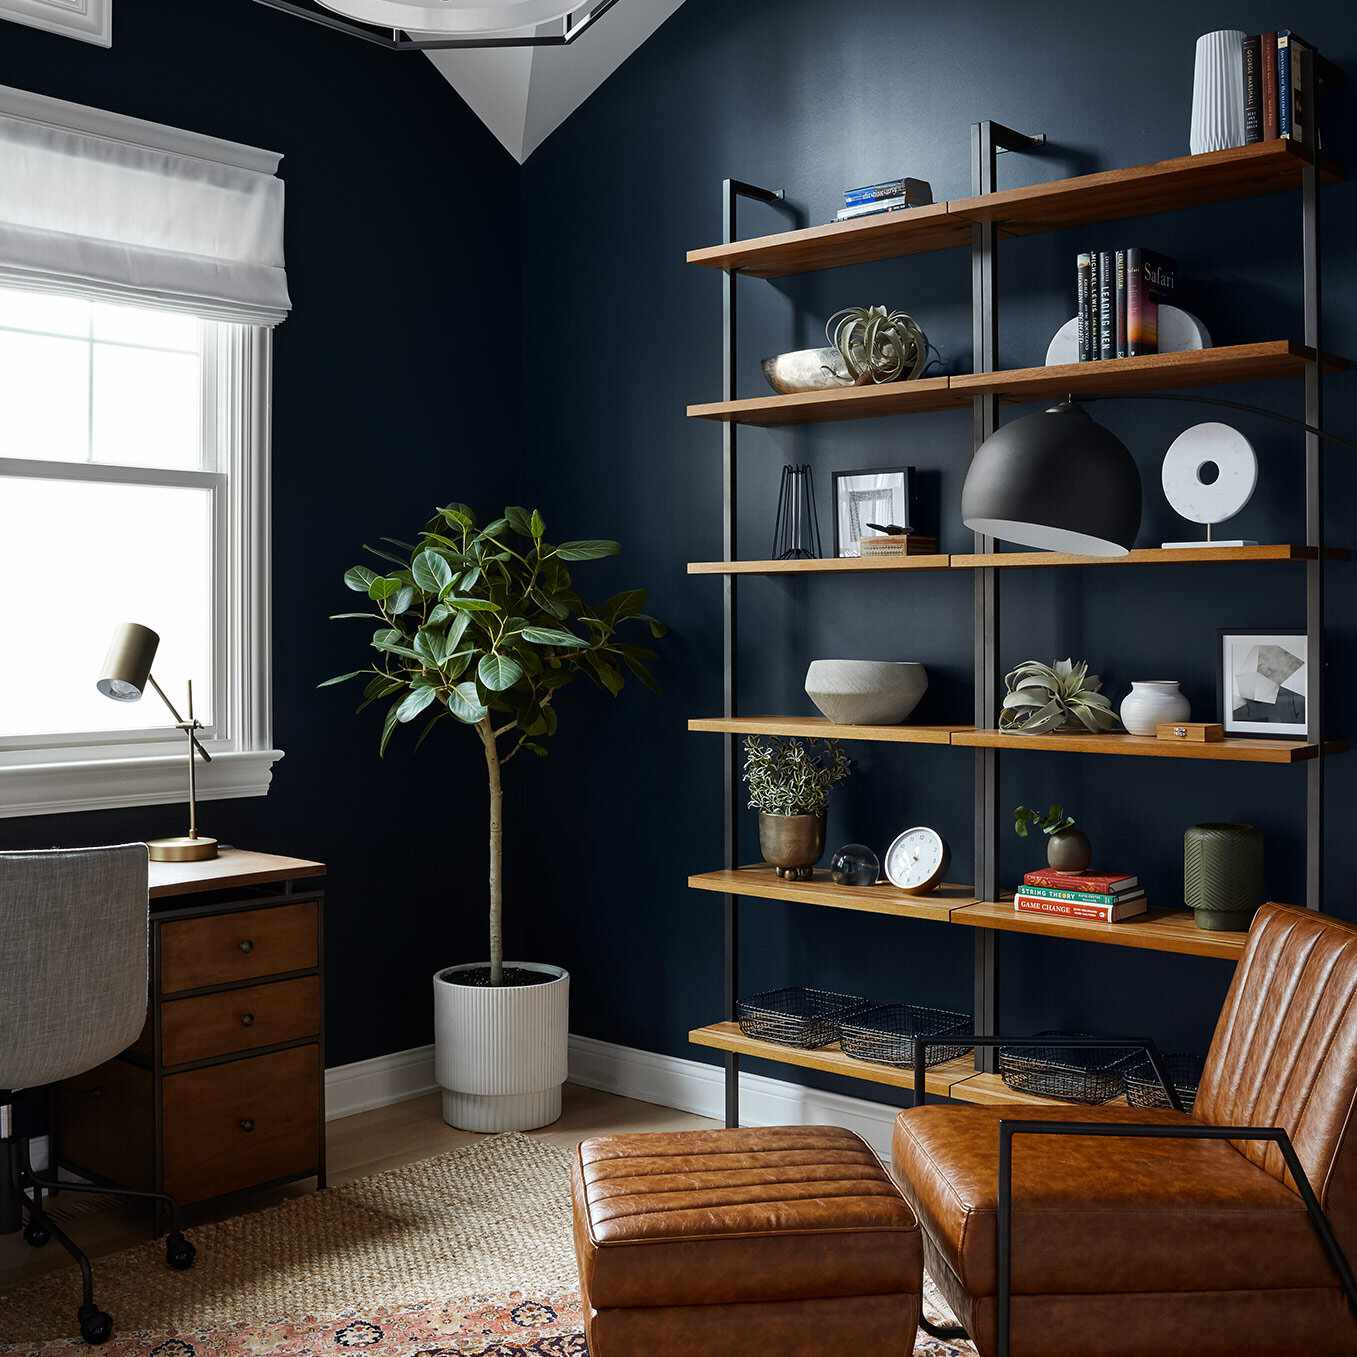 A home office with a wooden desk against a wall and a leather lounge chair in a corner